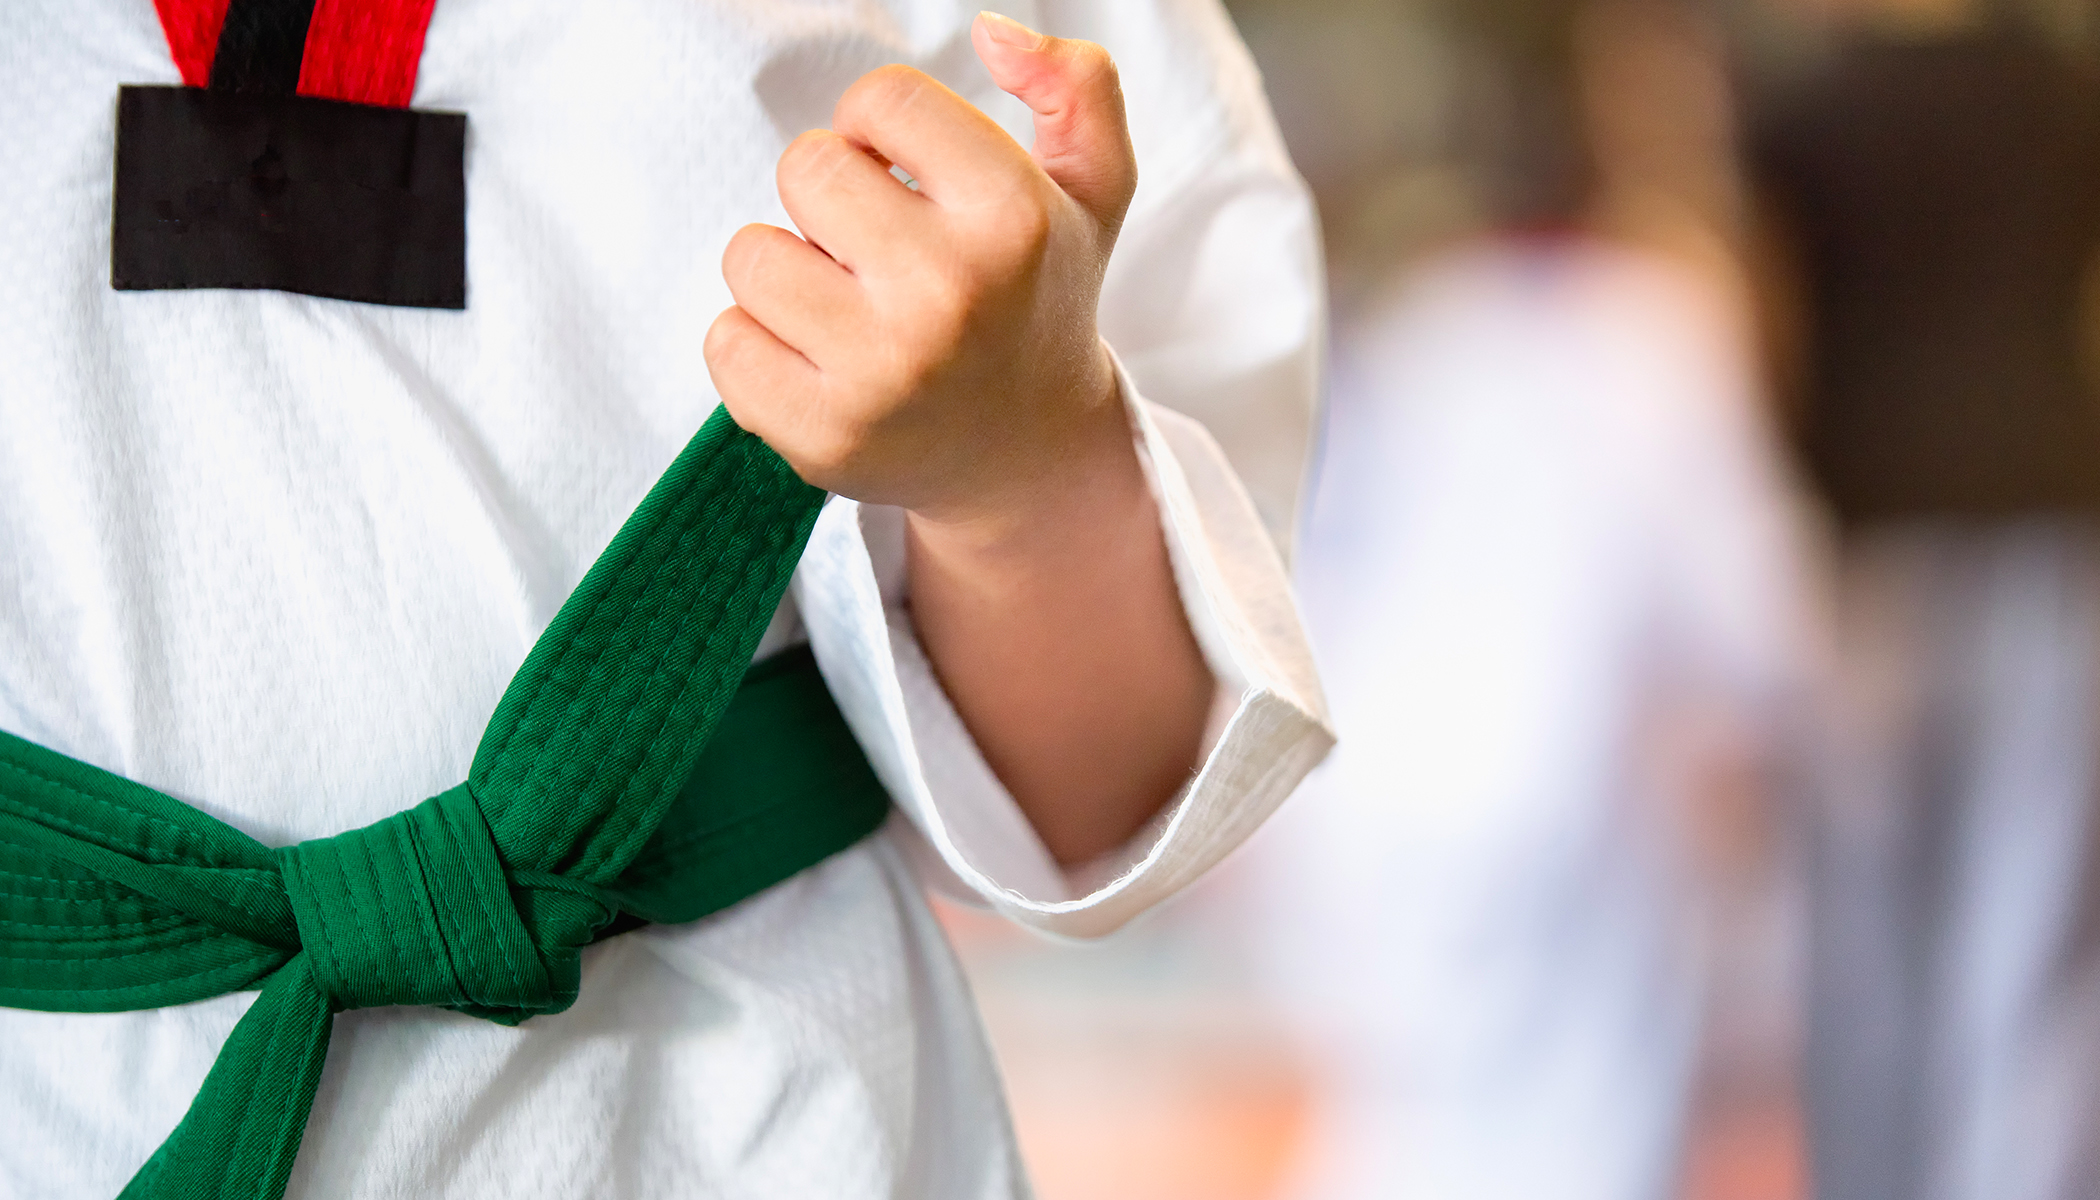 9-Year-Old With No Legs Practices Taekwondo, Wins Medals, and Hopes to Compete in Paralympics